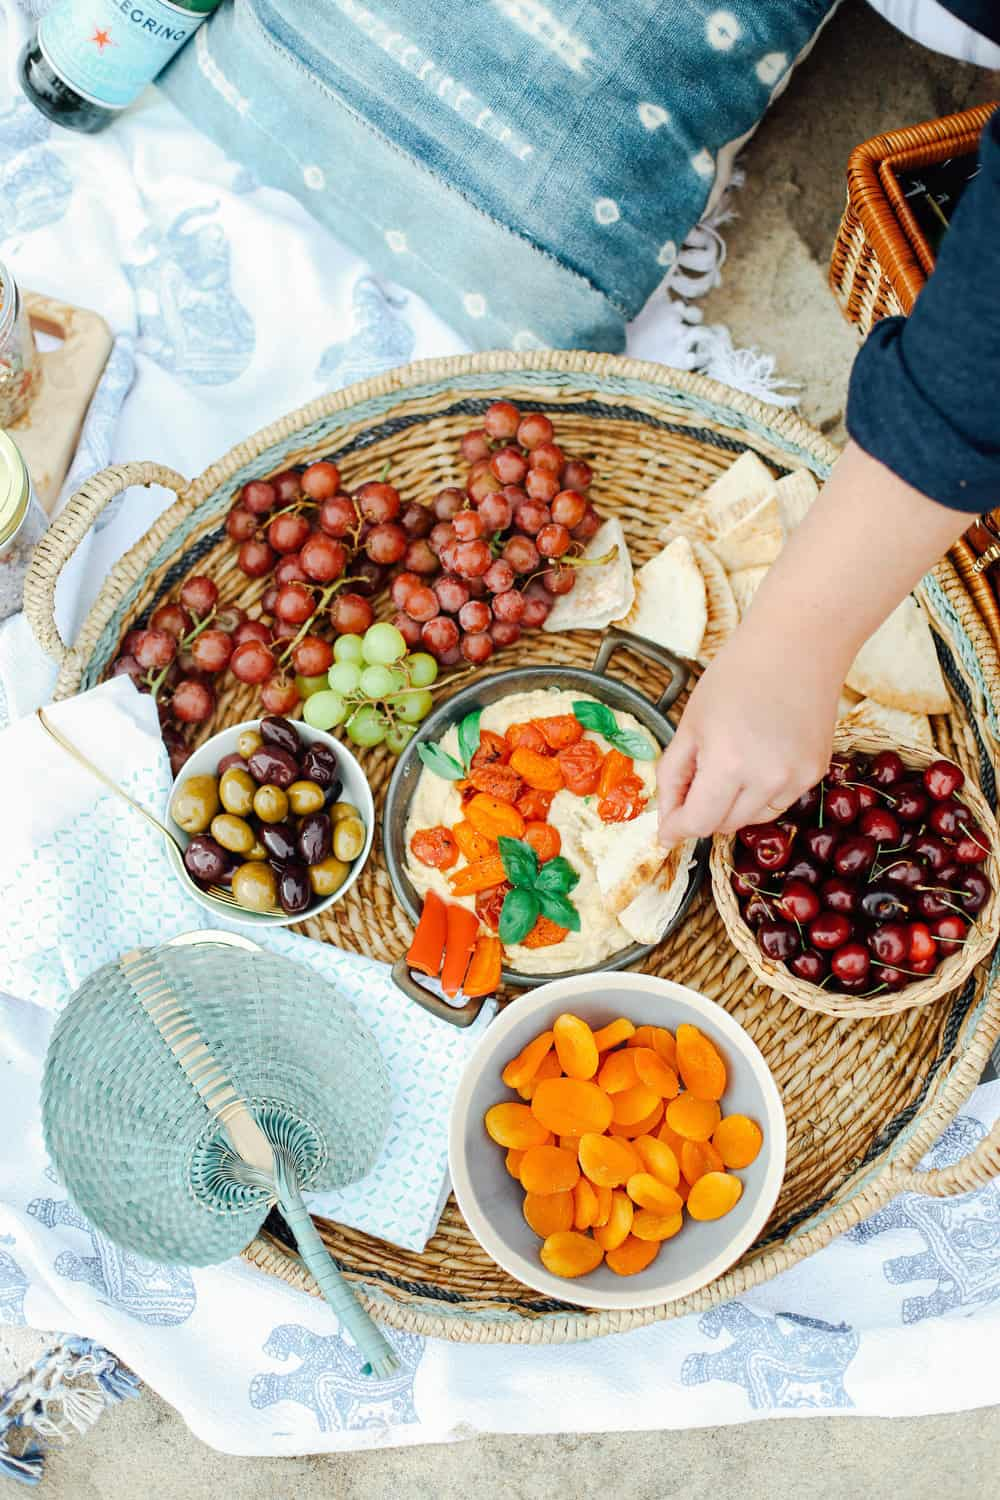 Hand dipping pita in a bowl of hummus in a wicker basket with grapes cherries apricots and olives on beach towels